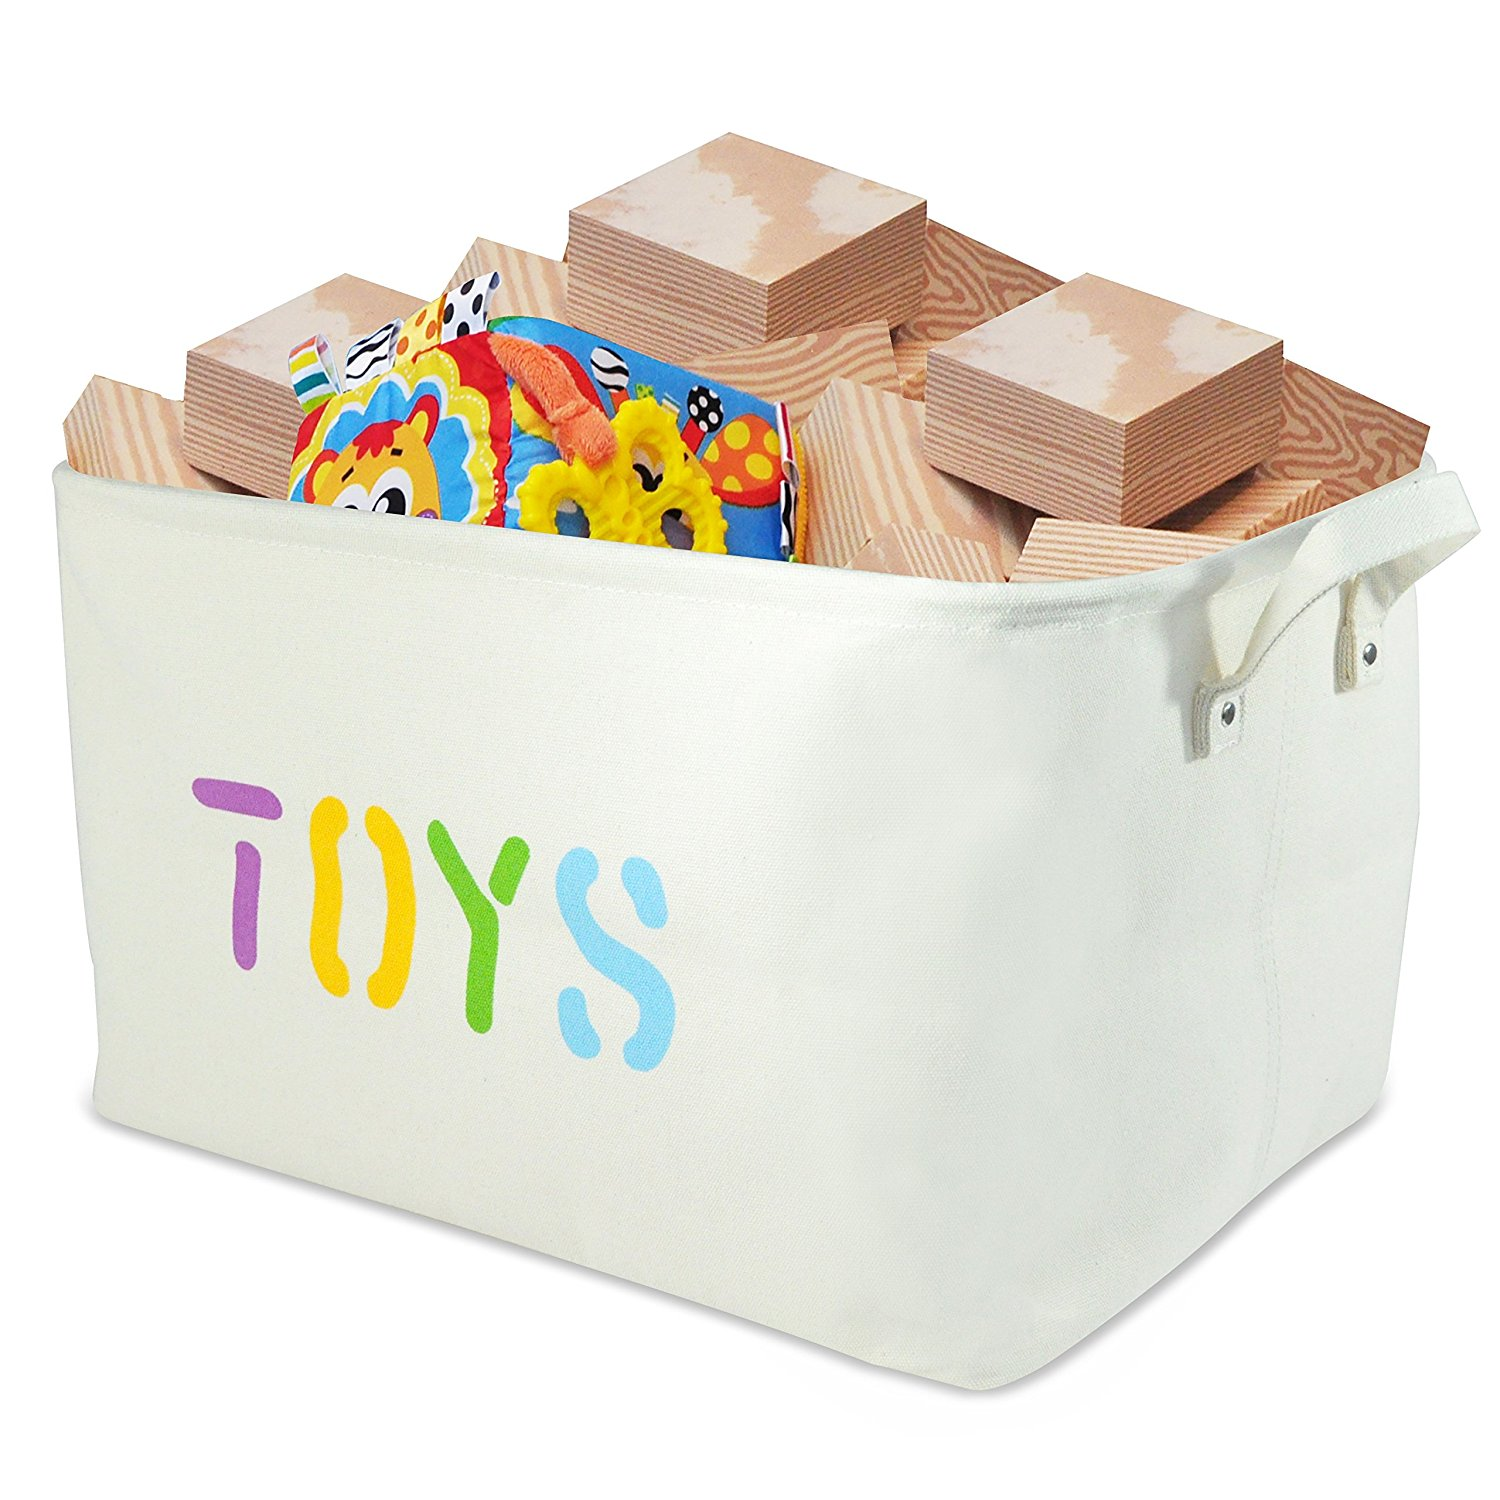 Toy Storage Baskets   20 X 14 X 10 Extra Large Basket Storage For Toys,